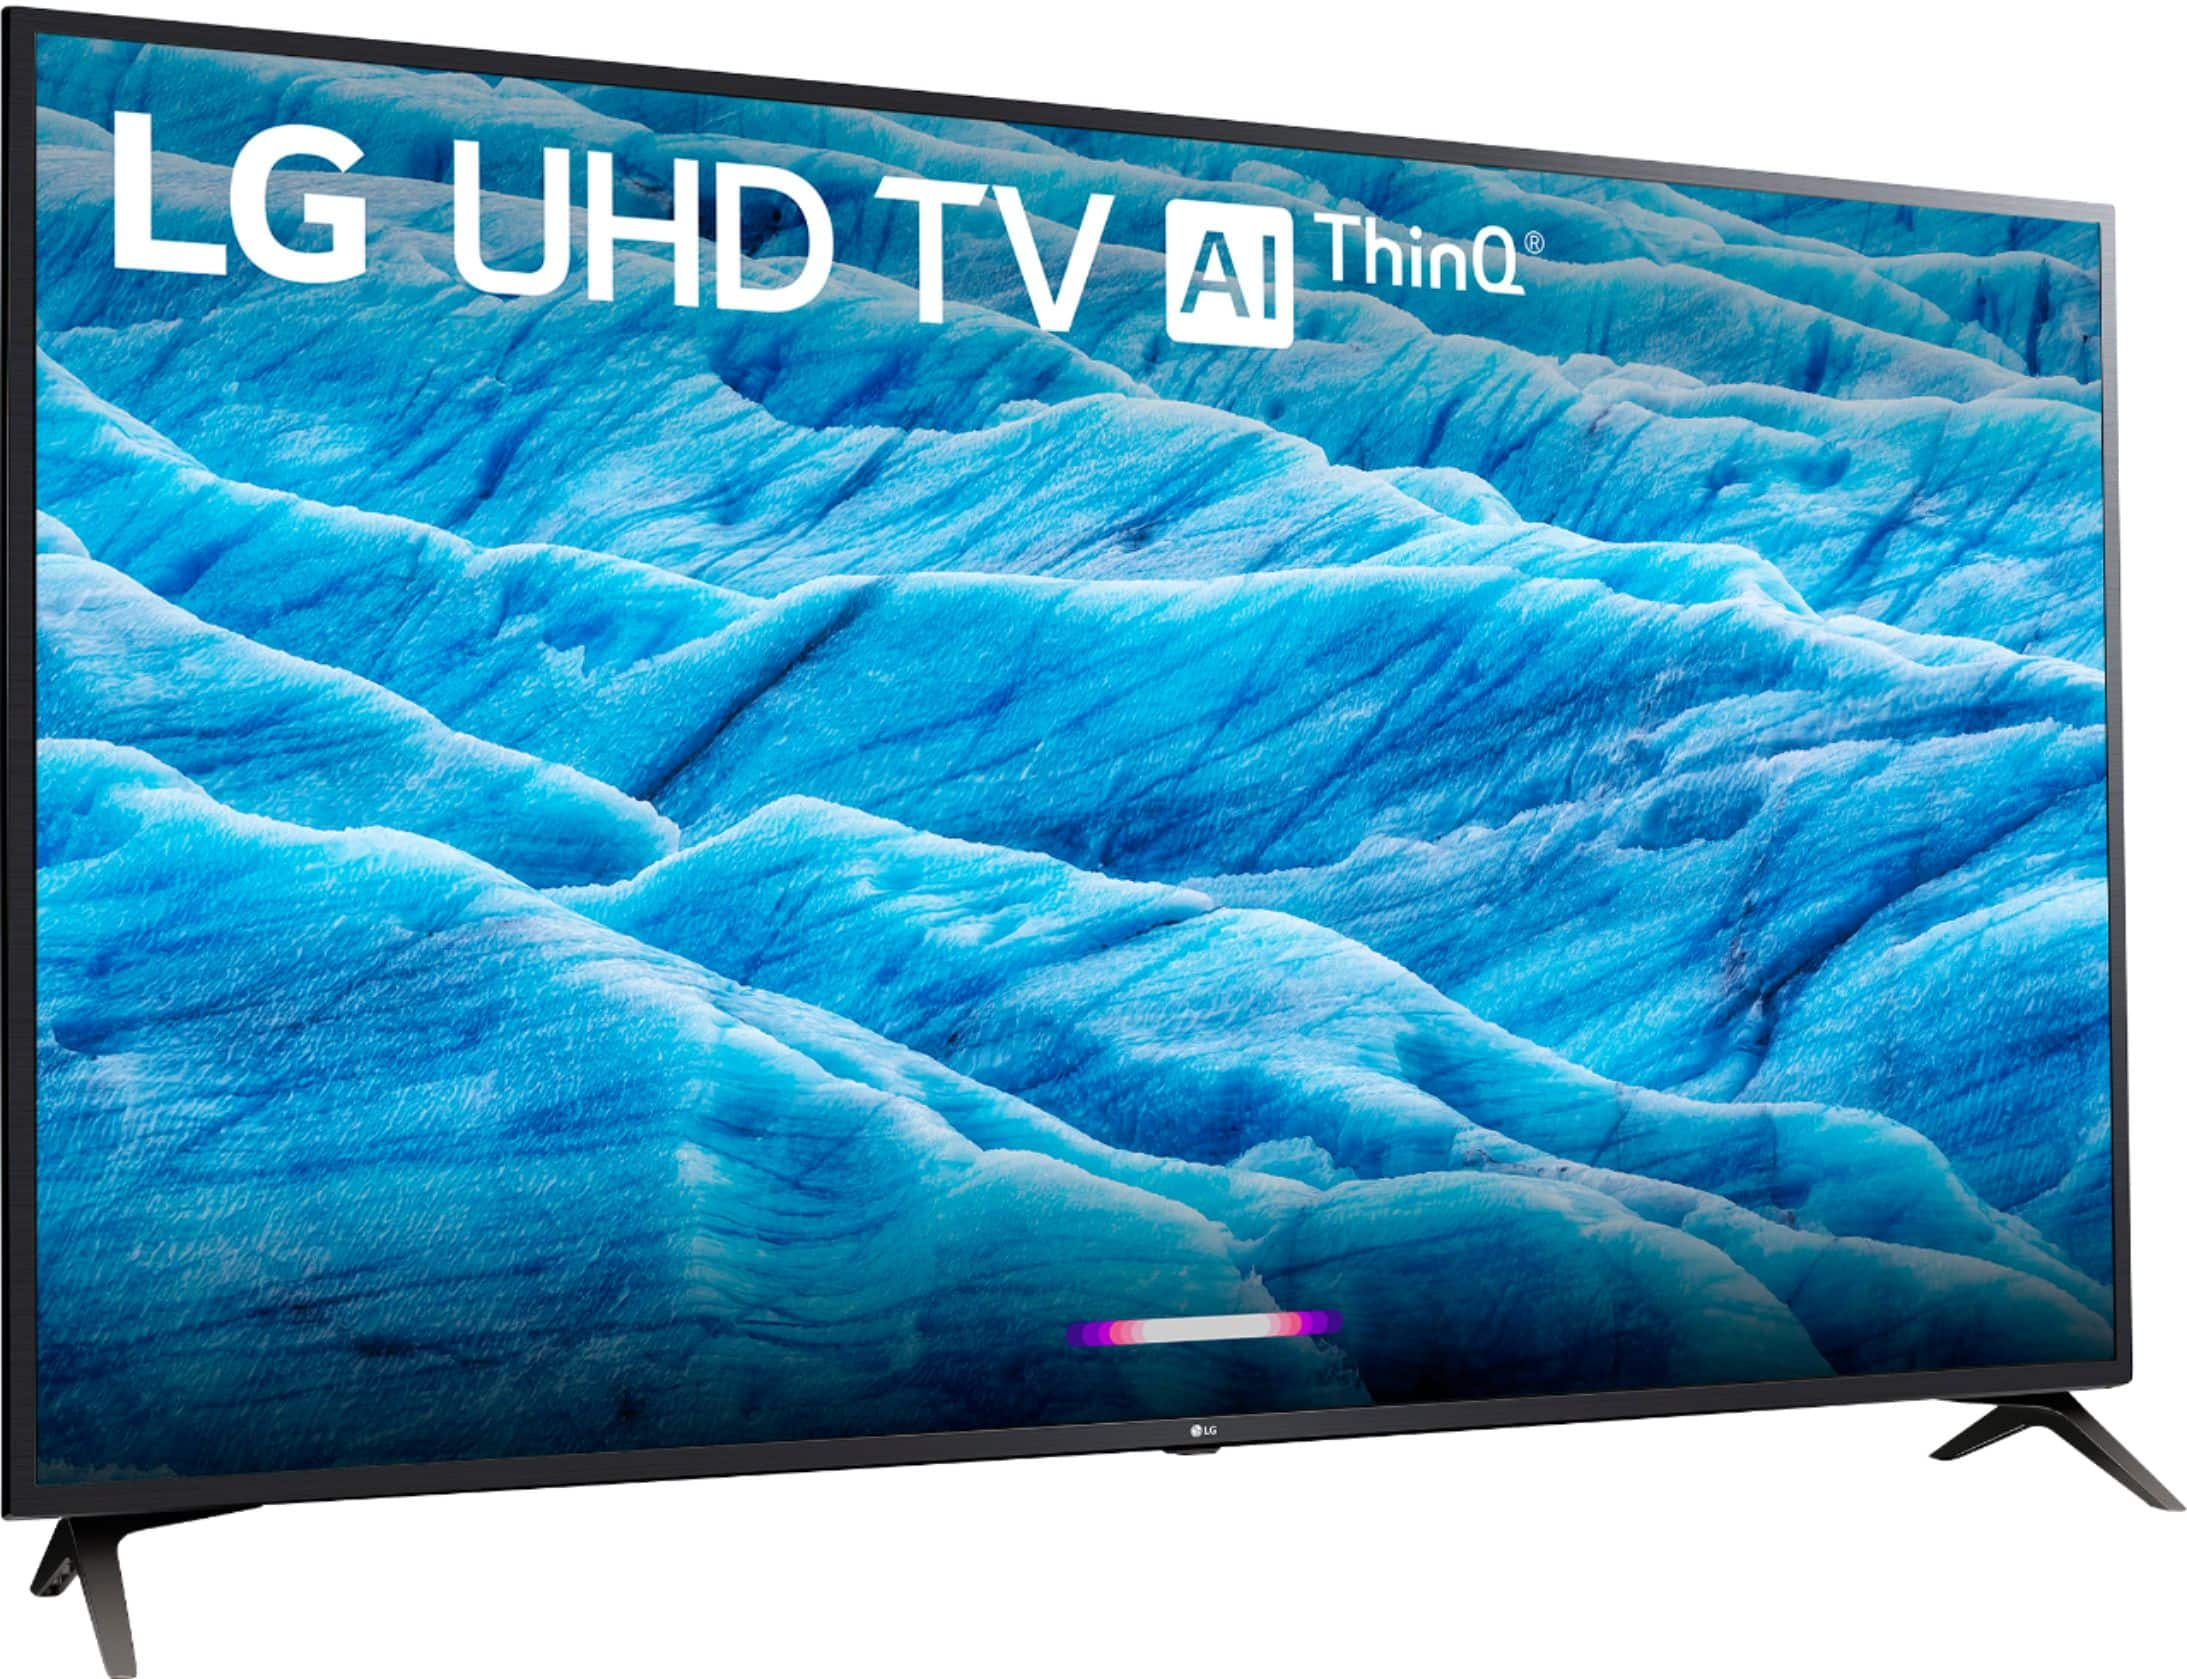 "LG - 70 "" Class - LED - 2160p - Smart - 4K UHD TV with HDR $700"